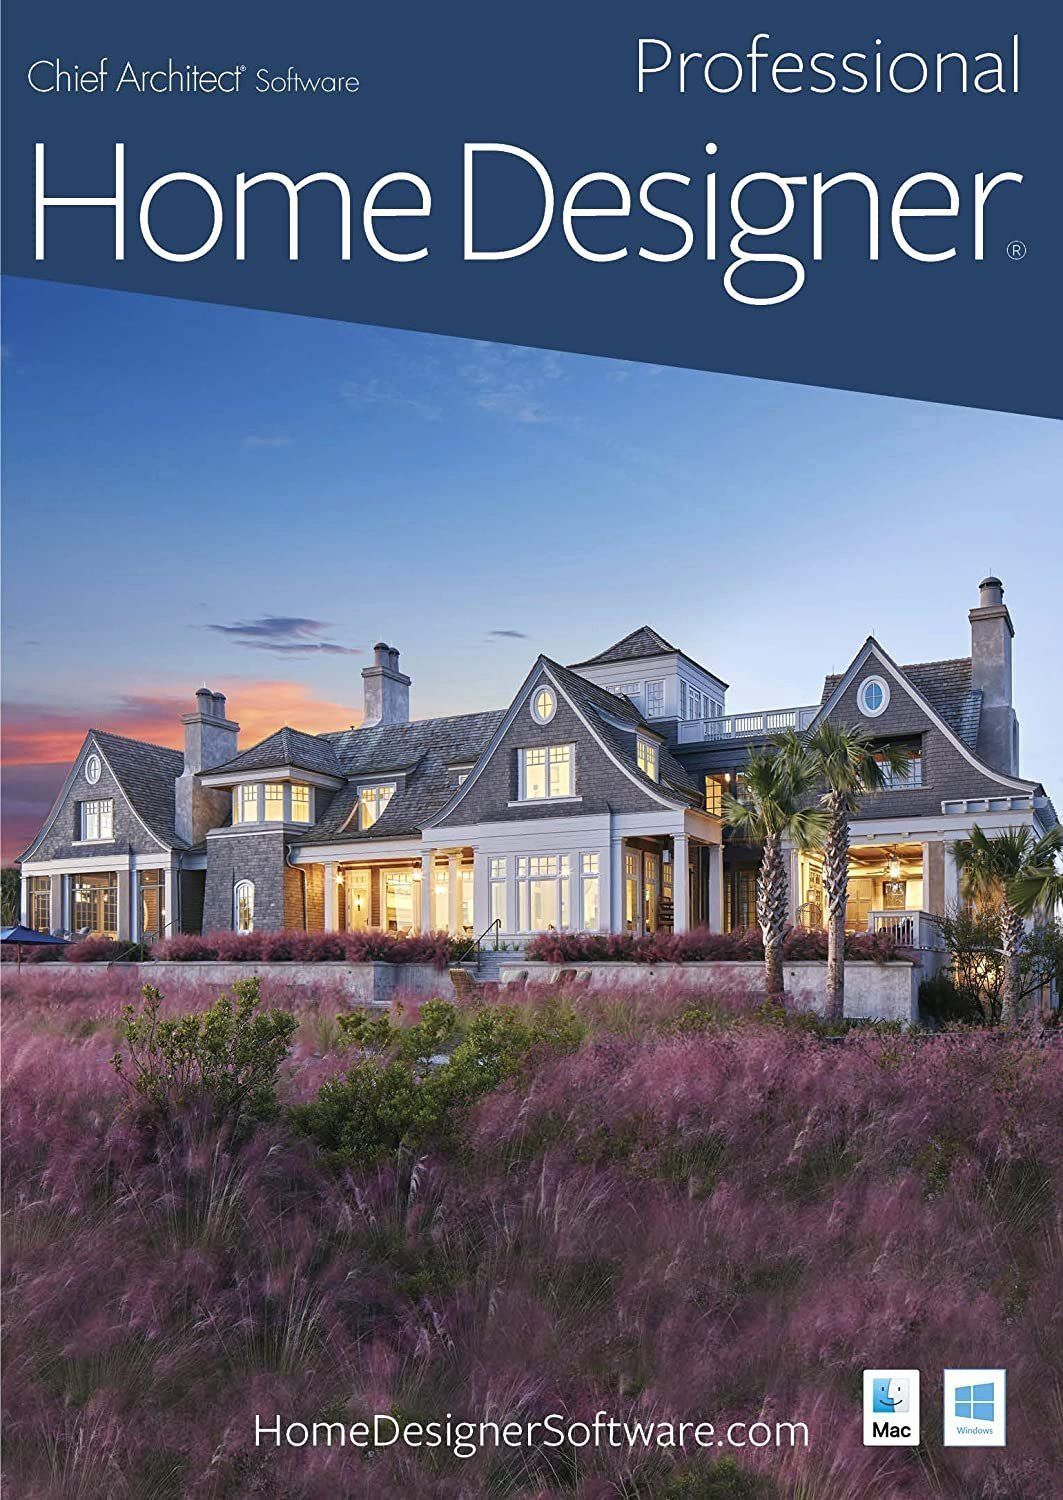 Home Designer Suite 2017 Free Download Full Version Beautiful Home Designer Pro Home Design Software Architect Software Chief Architect